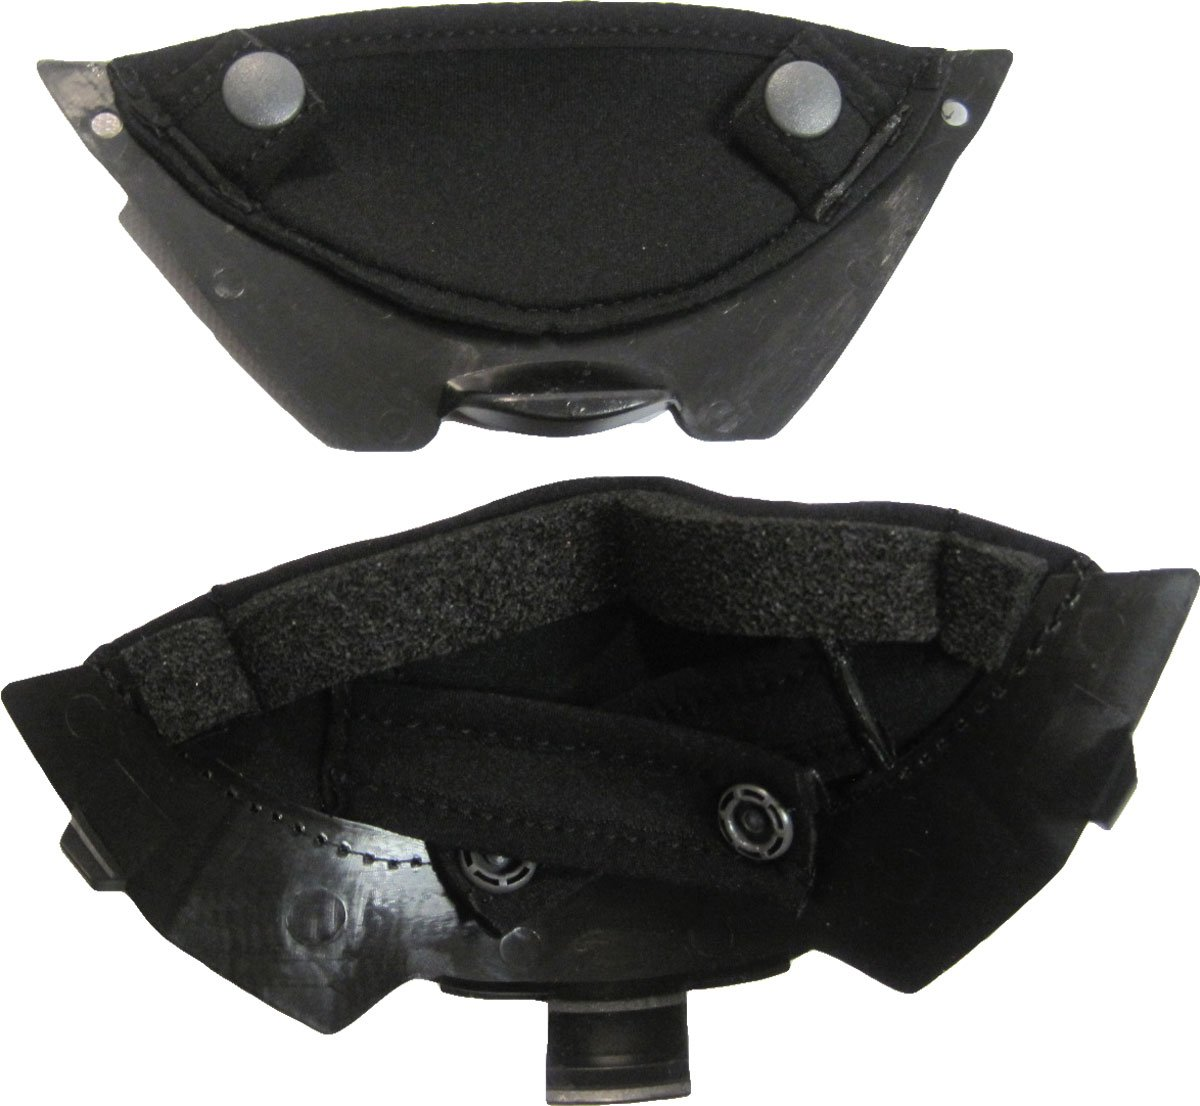 Scorpion Cold Weather Kit EXO-AT950 Snow Motorcycle Helmet Accessories - Black/One Size